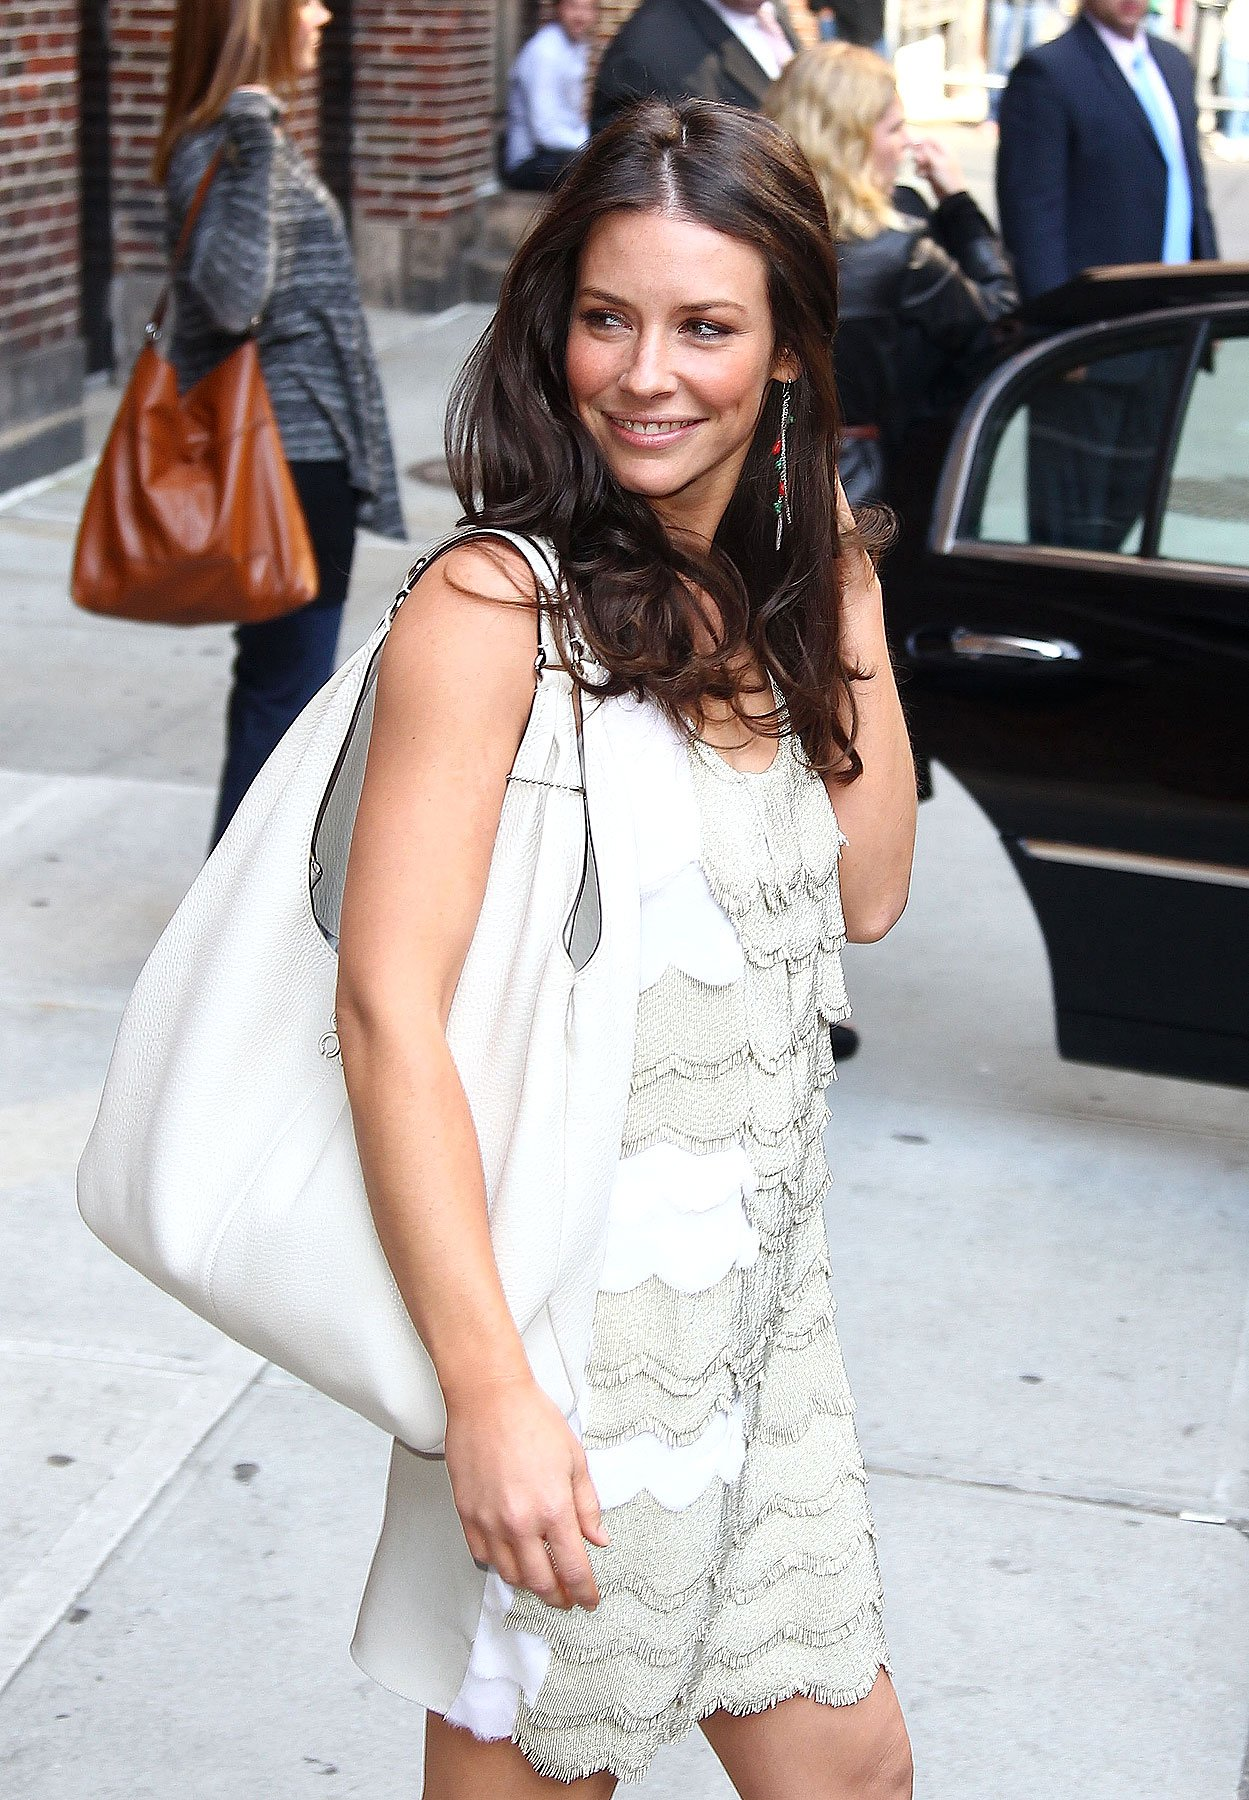 Fashion FTW: Evangeline Lilly Looks So Delicate (PHOTOS)